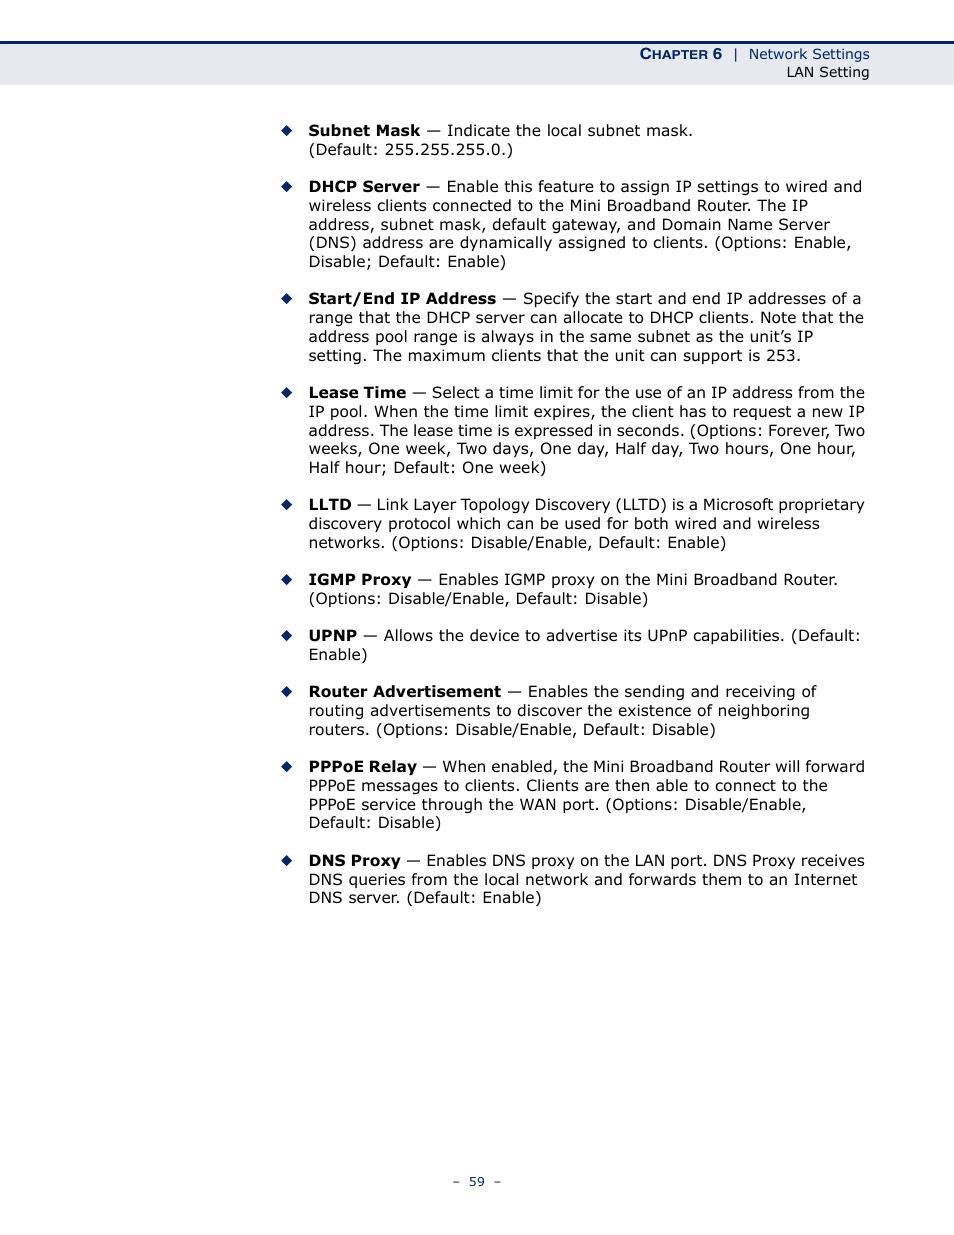 ALFA NETWORK AIP-W502 User Manual | Page 54 / 115